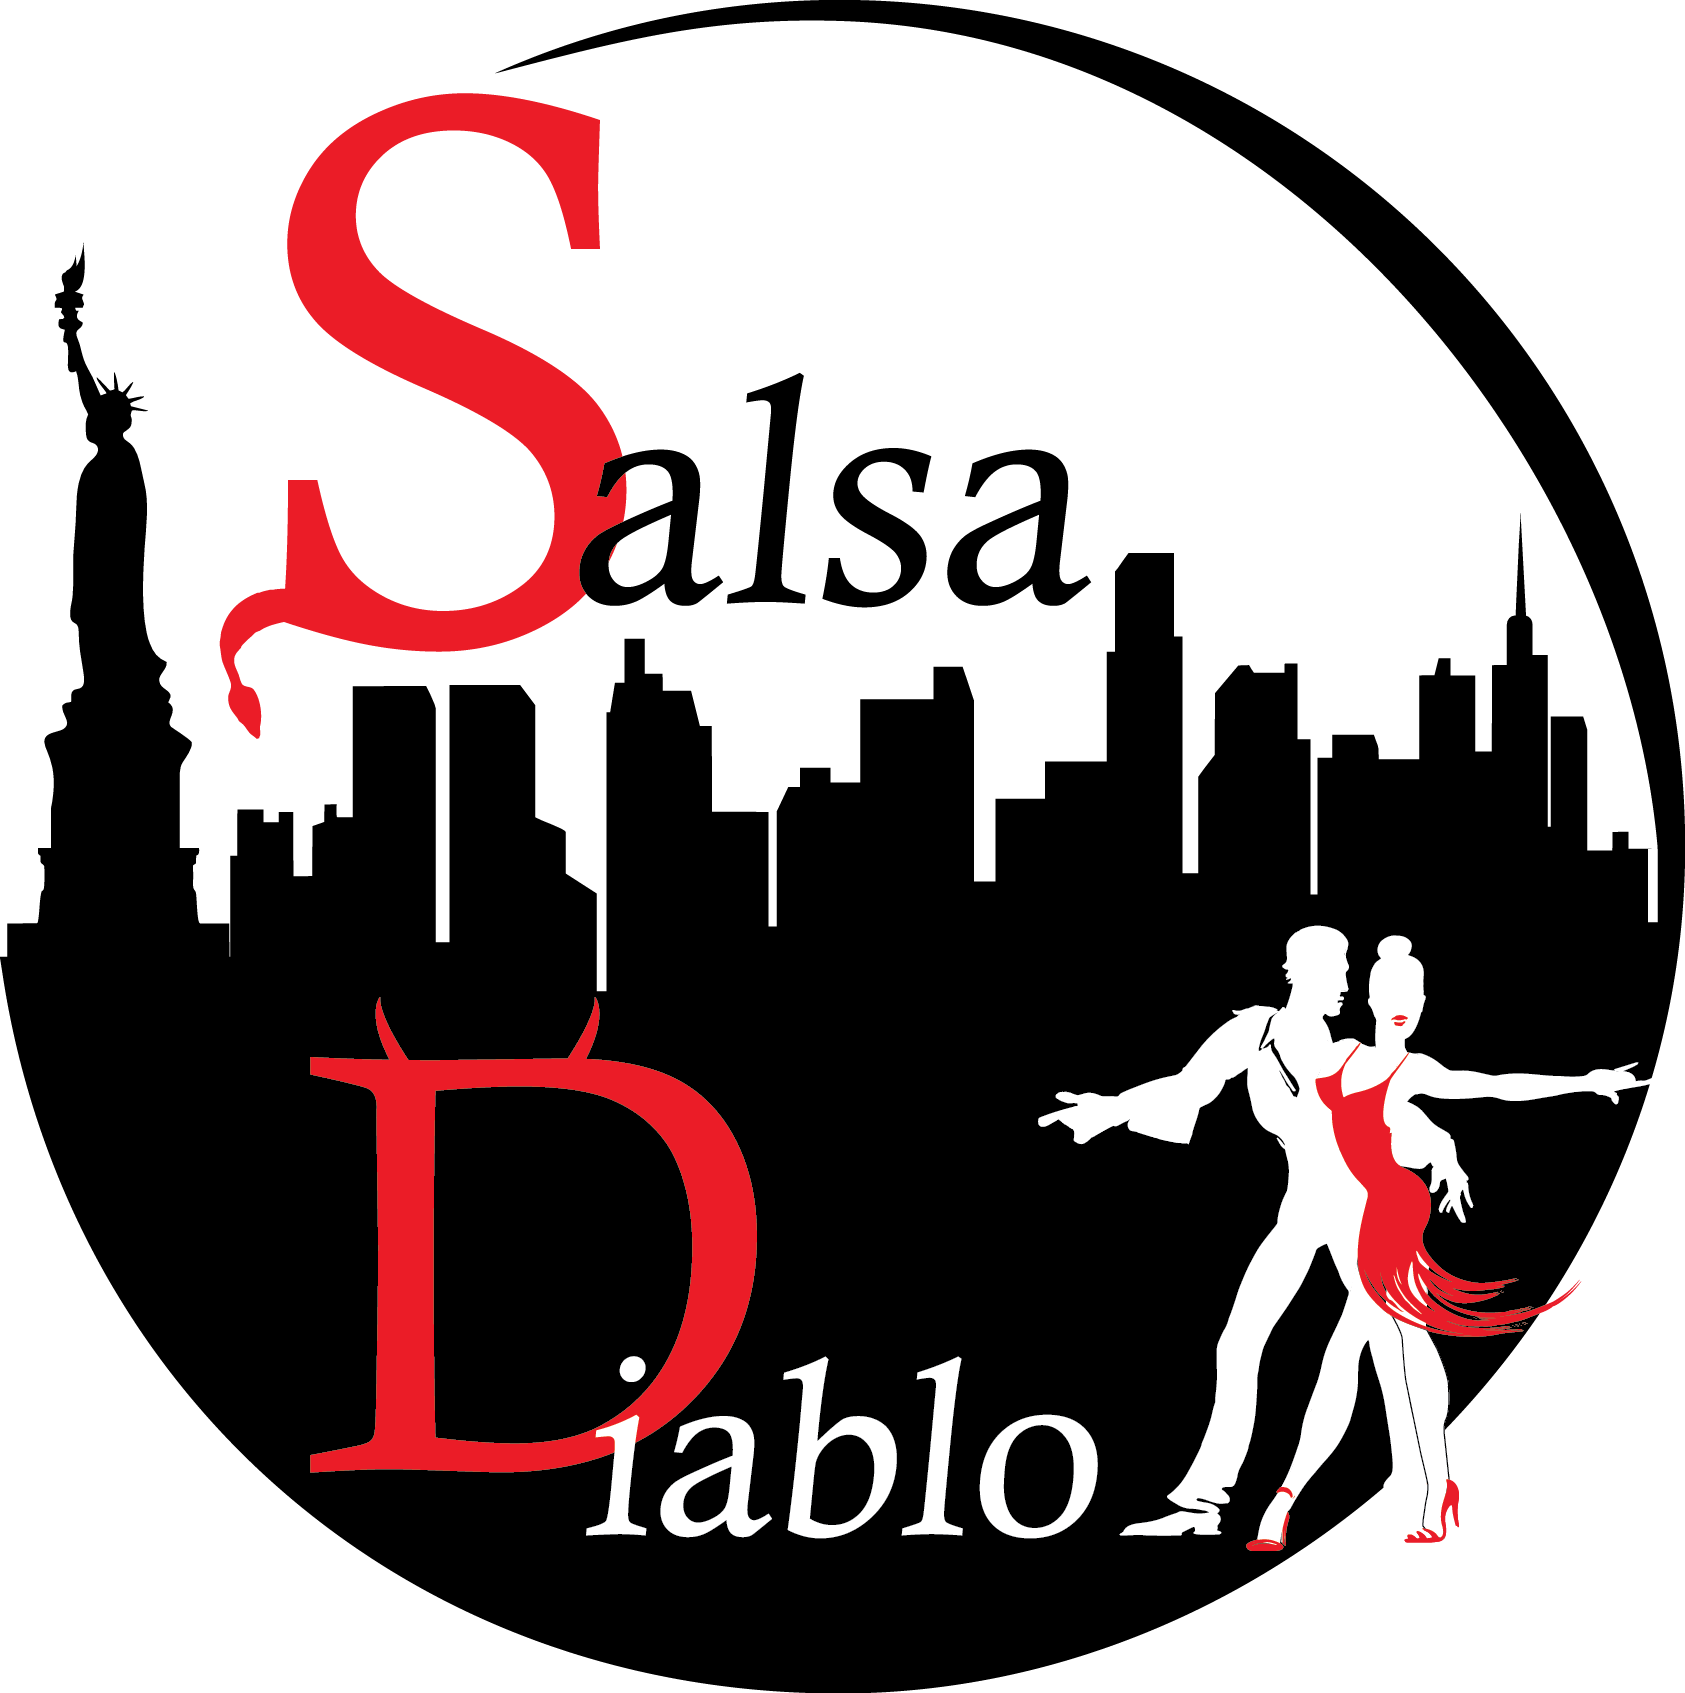 New Beginner Salsa Class - on 2 | Salsa Diablo